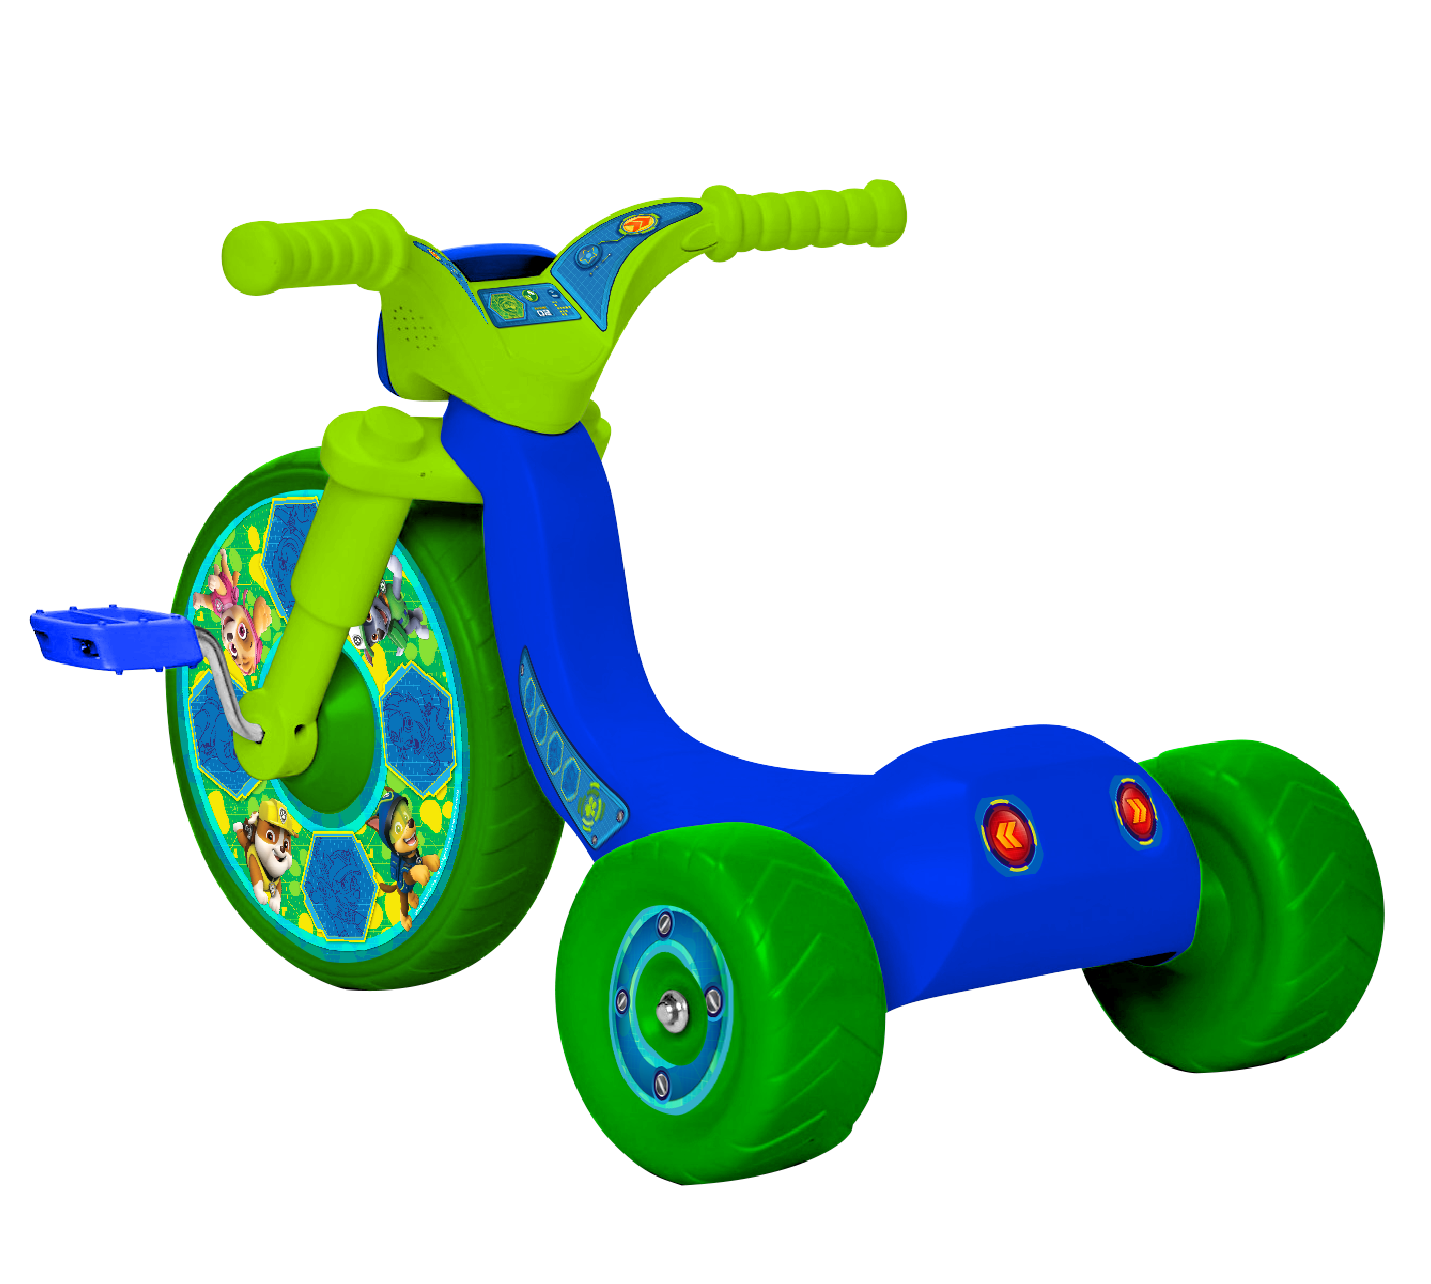 Paw Patrol Code Paw 10 Fly Wheels Junior Cruiser Trike Vibrant Character Graphics Large 10 Inch Front Wheel Includes 2 Push Buttons On Handle For Sounds Age Grade 2 4 Years Walmart Com Walmart Com